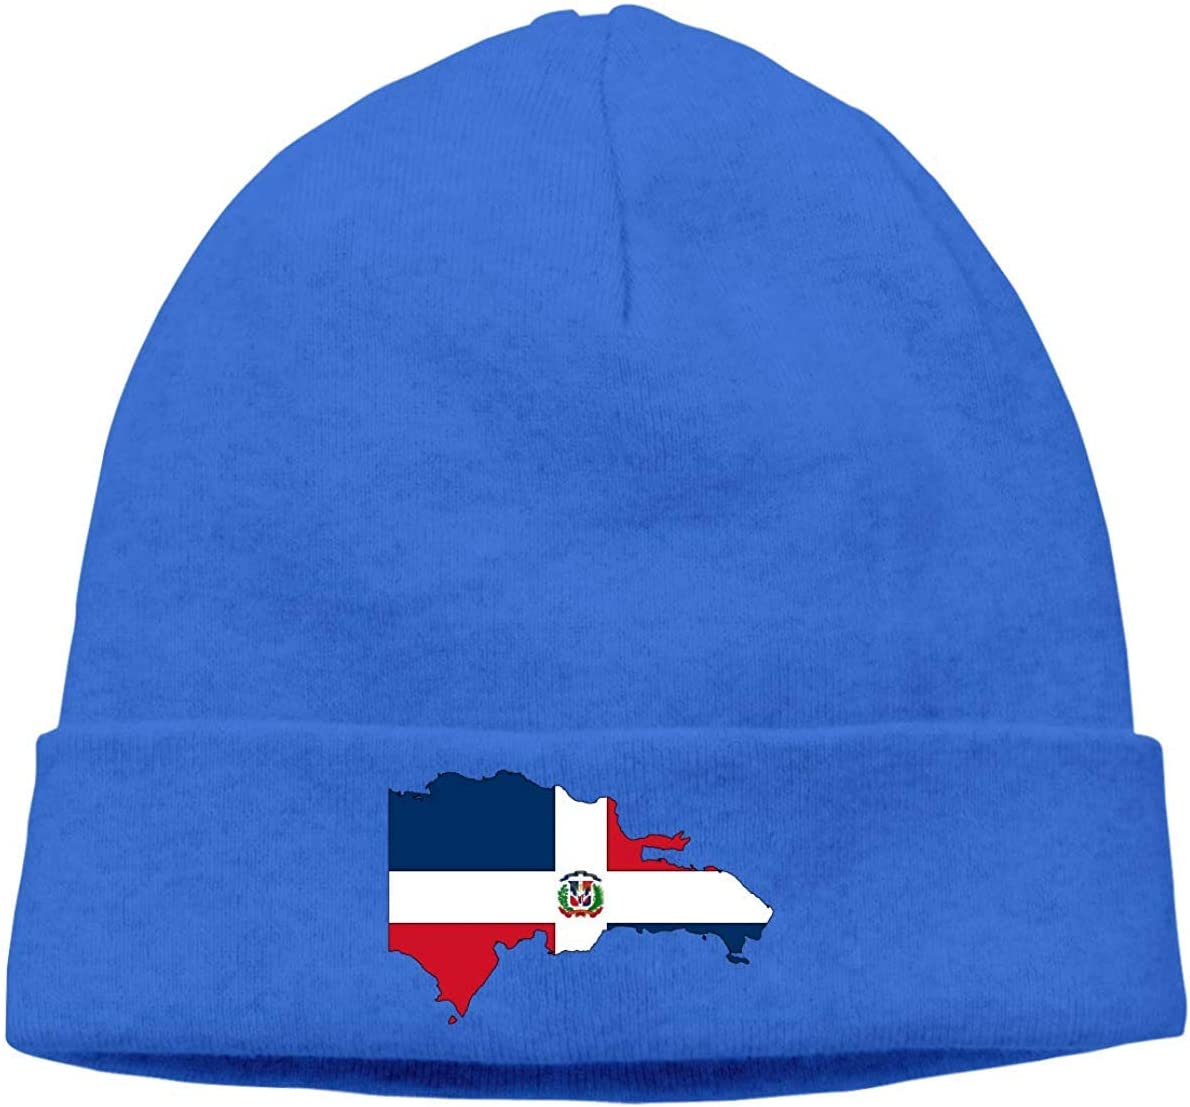 hgdfhfgd Thick Knitting Hat for Mens and Womens Dominican Republic Map Flag Ski Cap Keep warm 19677